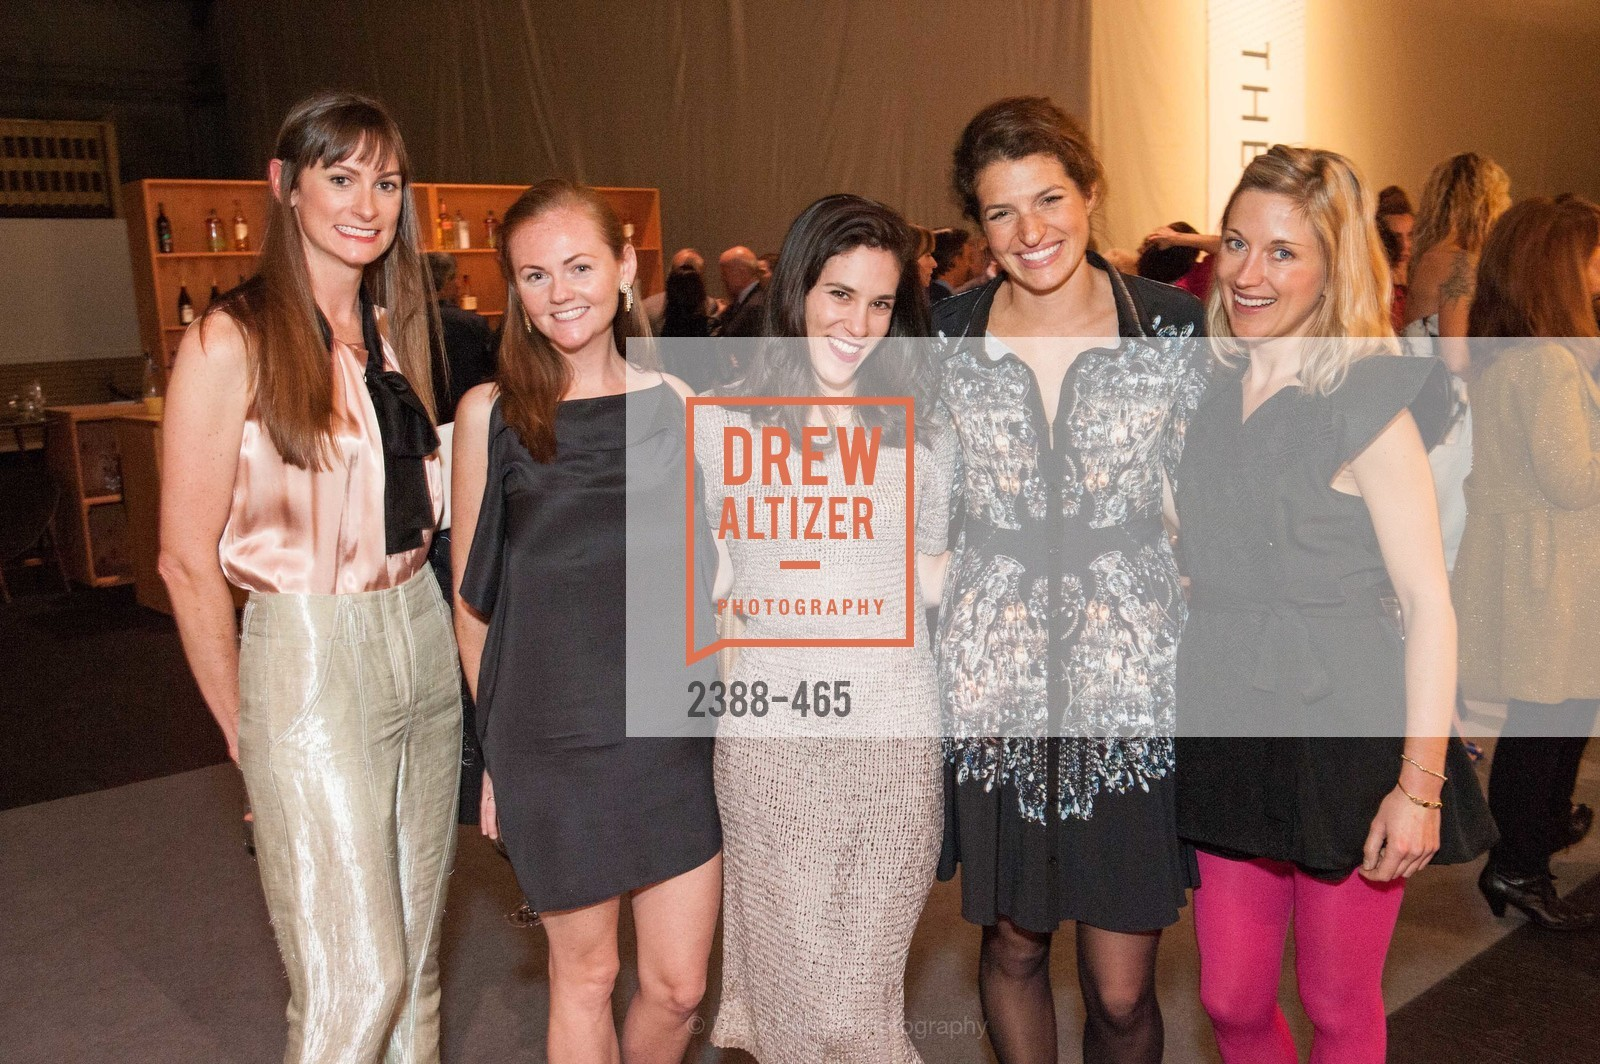 Evie Howell, Katie Spalding, Tessa Perliss, Lexie Fisher, FOG Design + Art Preview Gala, US. US, January 16th, 2014,Drew Altizer, Drew Altizer Photography, full-service event agency, private events, San Francisco photographer, photographer California